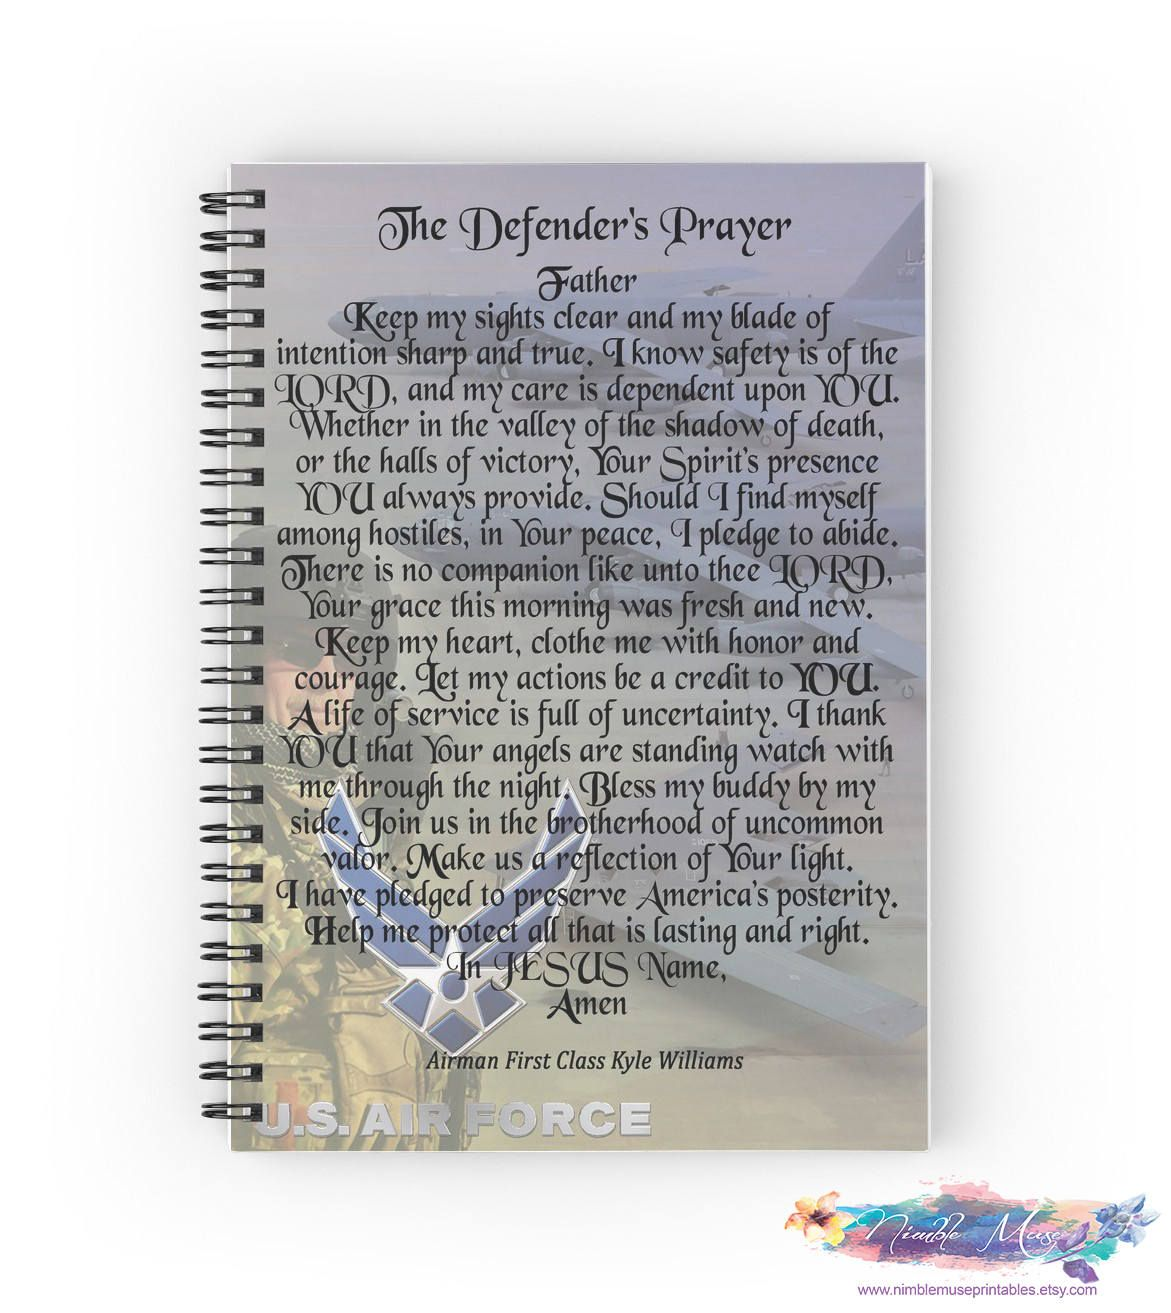 Air Force Gifts, Personalized Air Force Gift, USAF